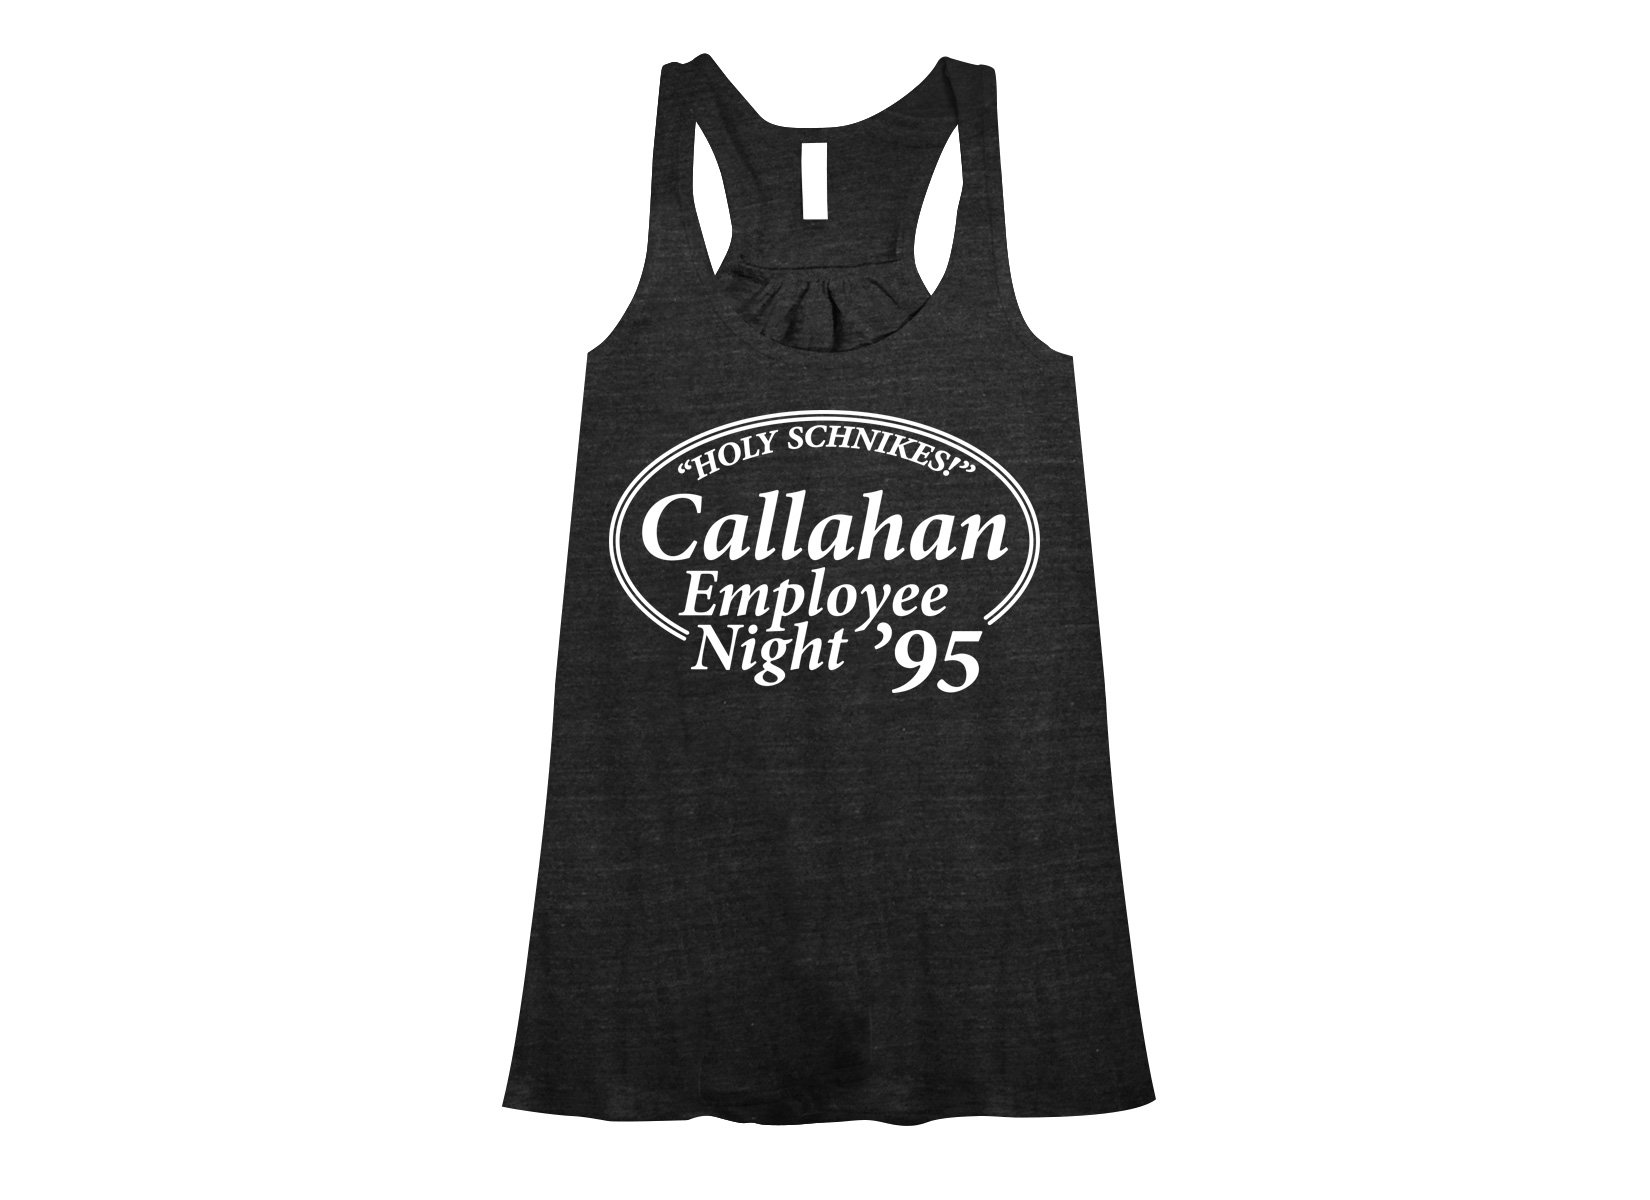 Callahan Employee Night on Womens Tanks T-Shirt